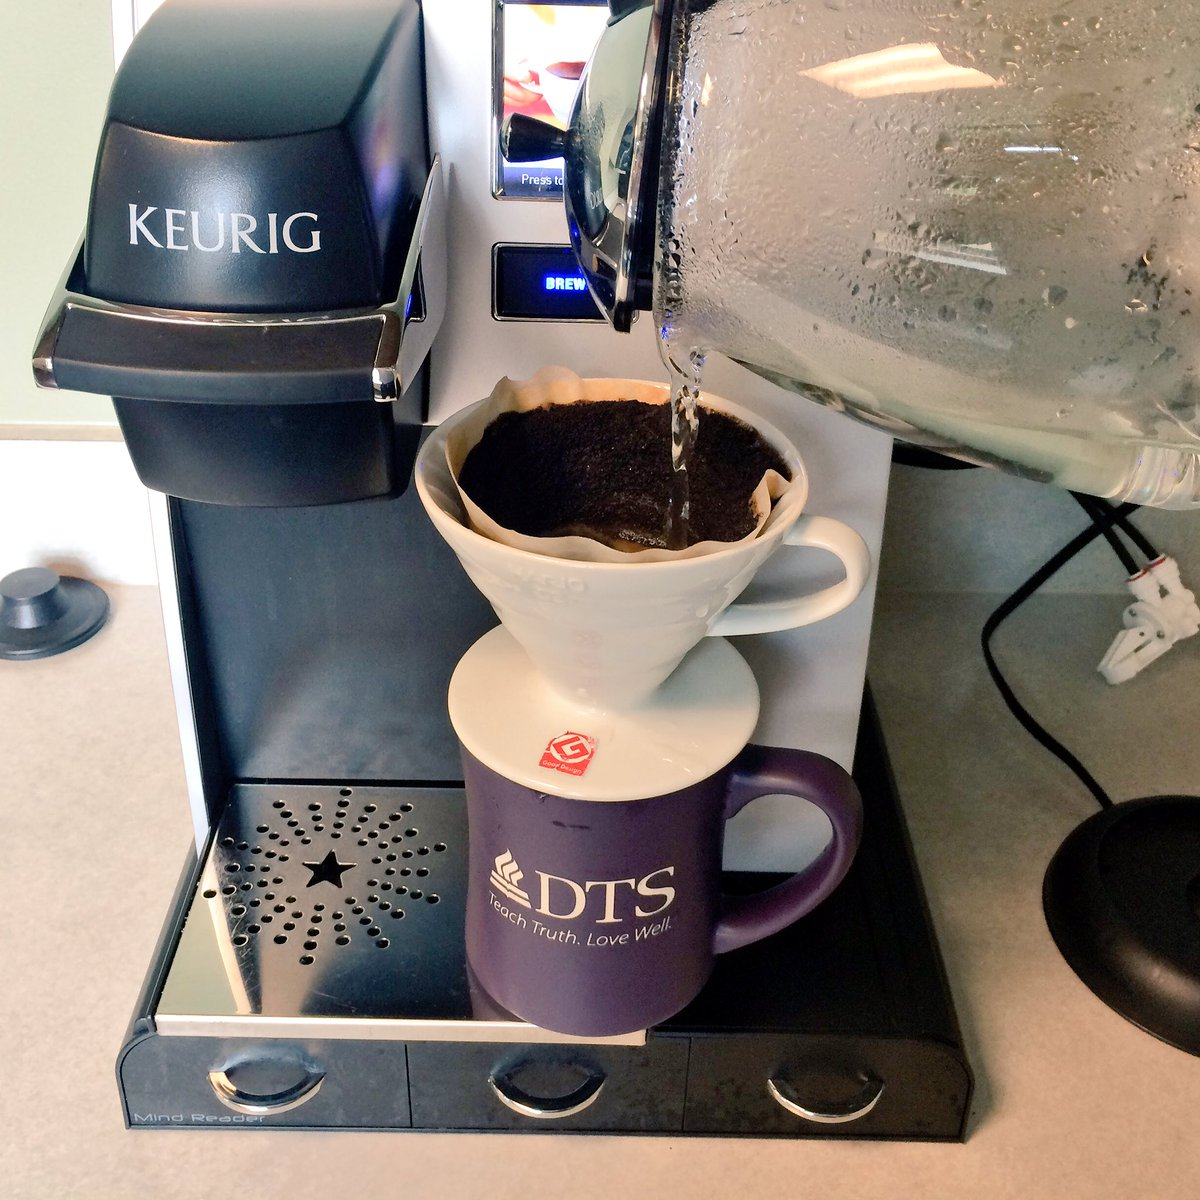 How to properly use a Keurig. https://t.co/SDedyWATvt